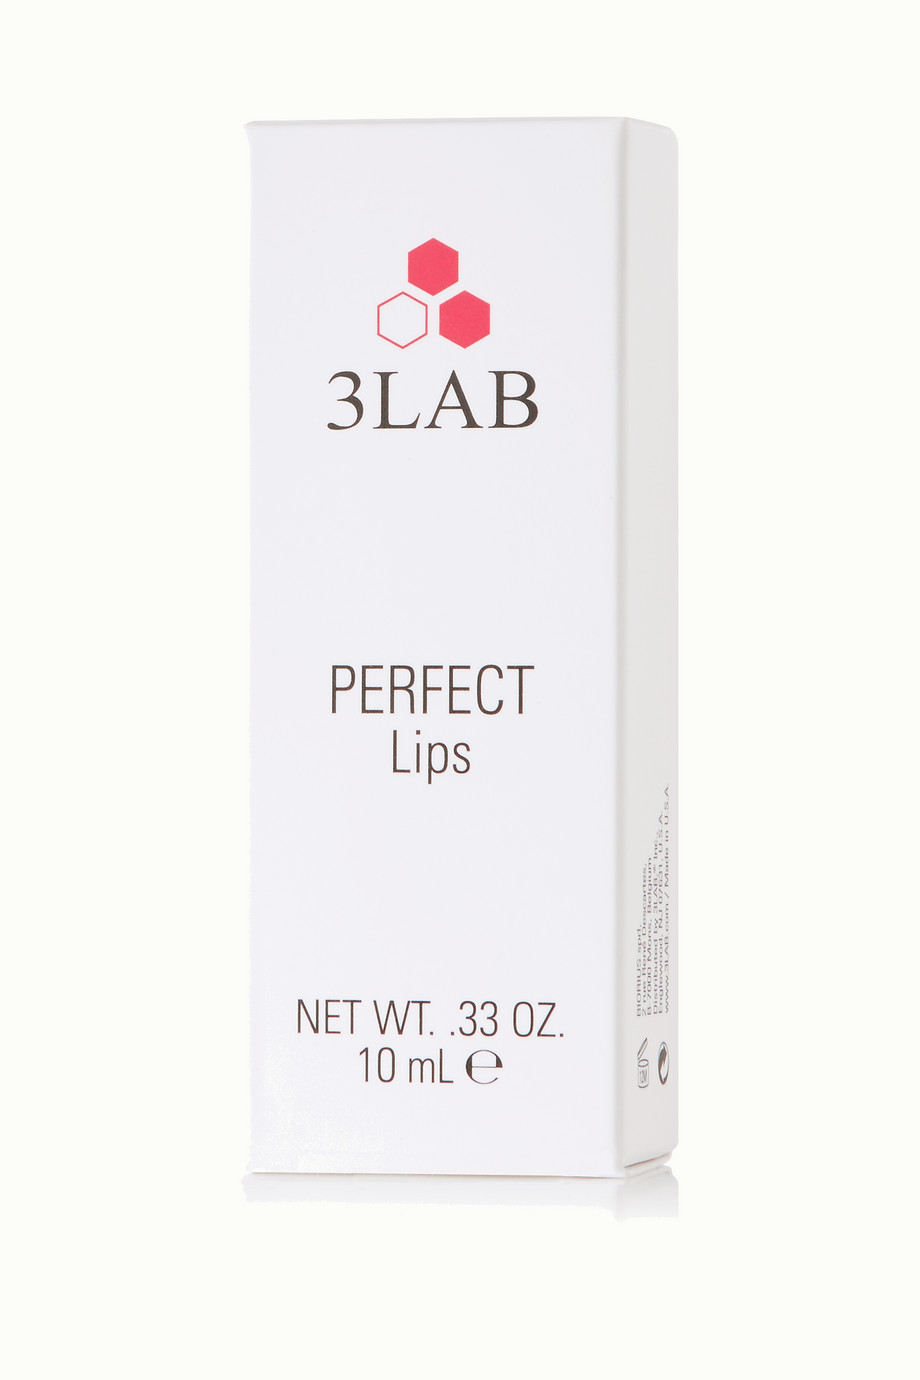 3LAB PERFECT Lips, 10ml